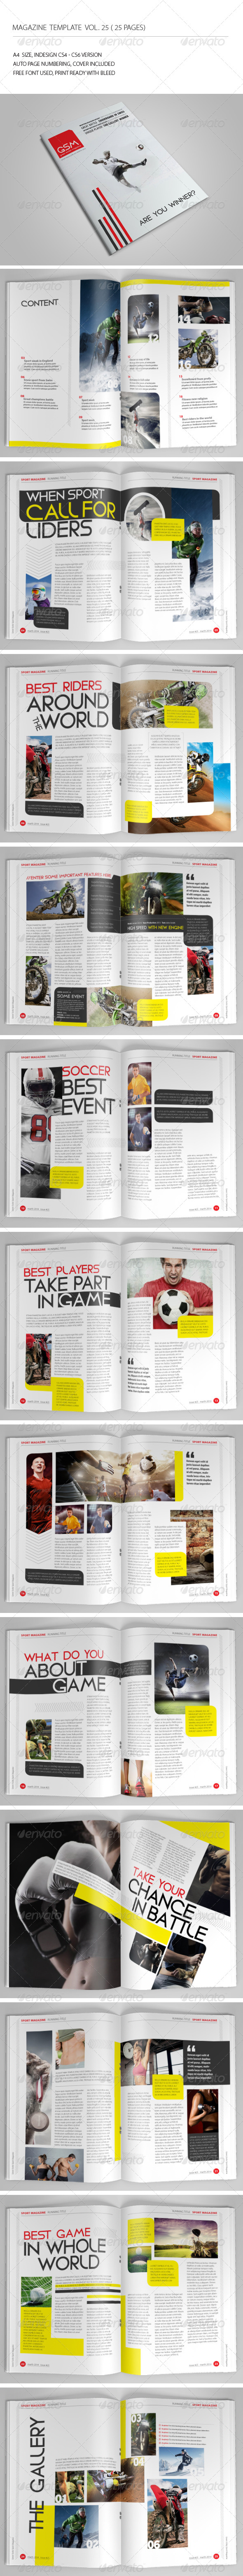 25 Pages Sport Magazine Vol25 - Magazines Print Templates